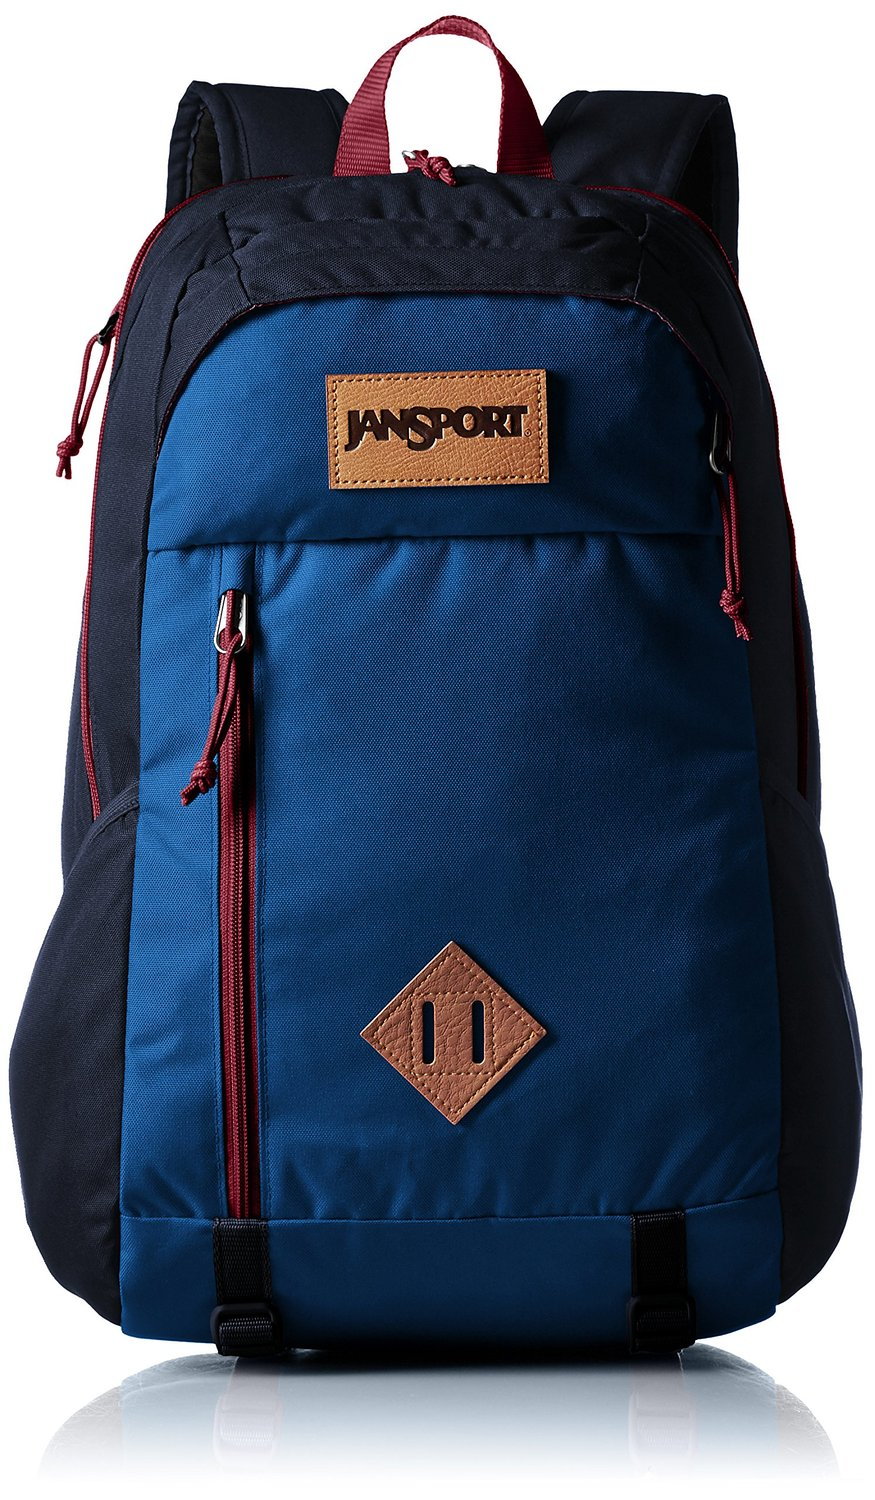 9d98dc91f7 Buy Jansport Fox Hole Backpack in Cheap Price on Alibaba.com